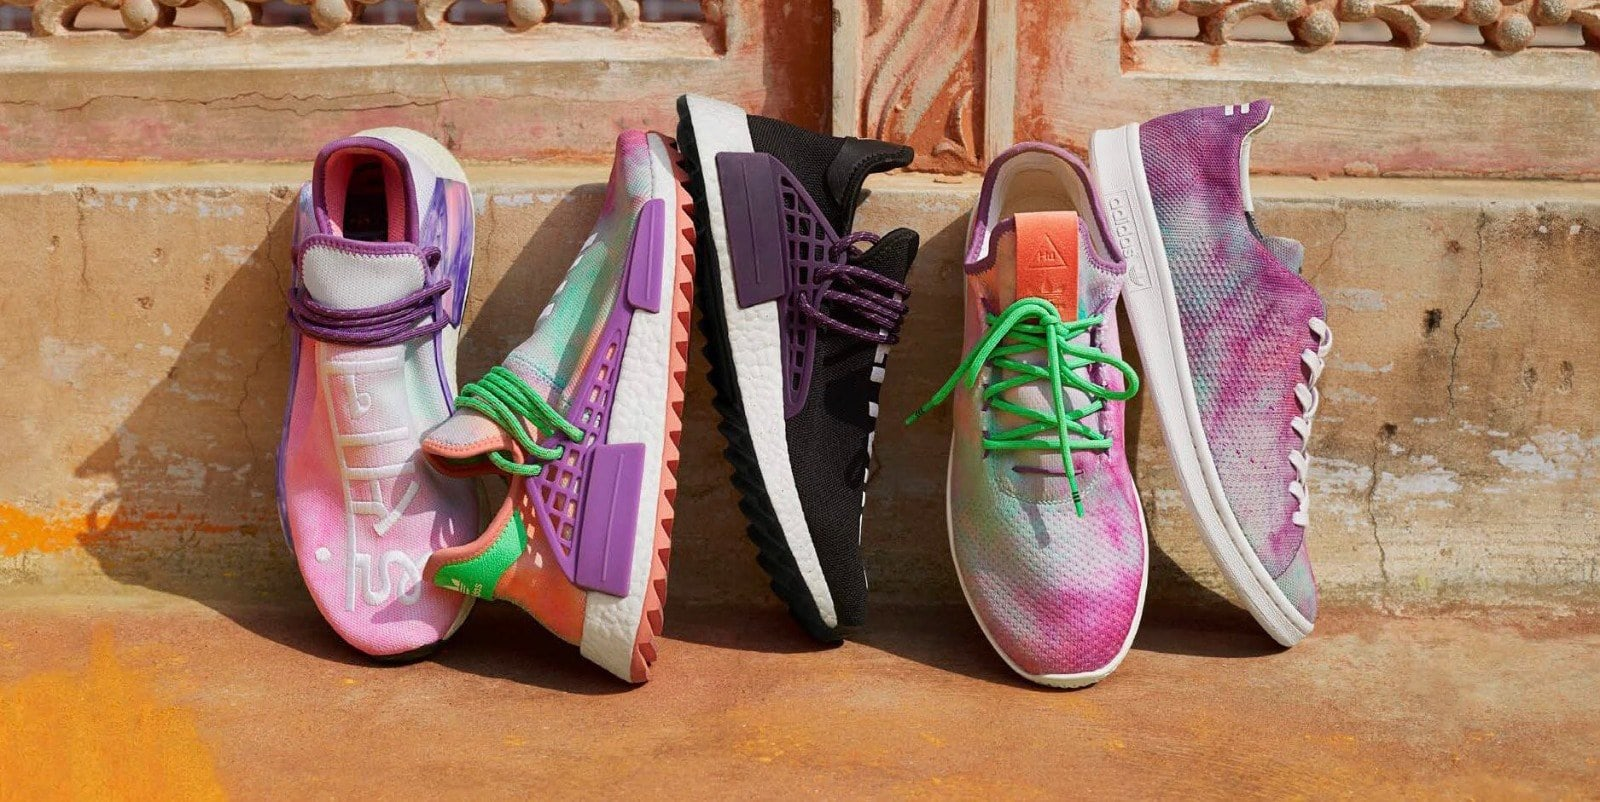 ae3a2e9f9dc85 Complete Look at the Pharrell x adidas Hu Holi Collection ...